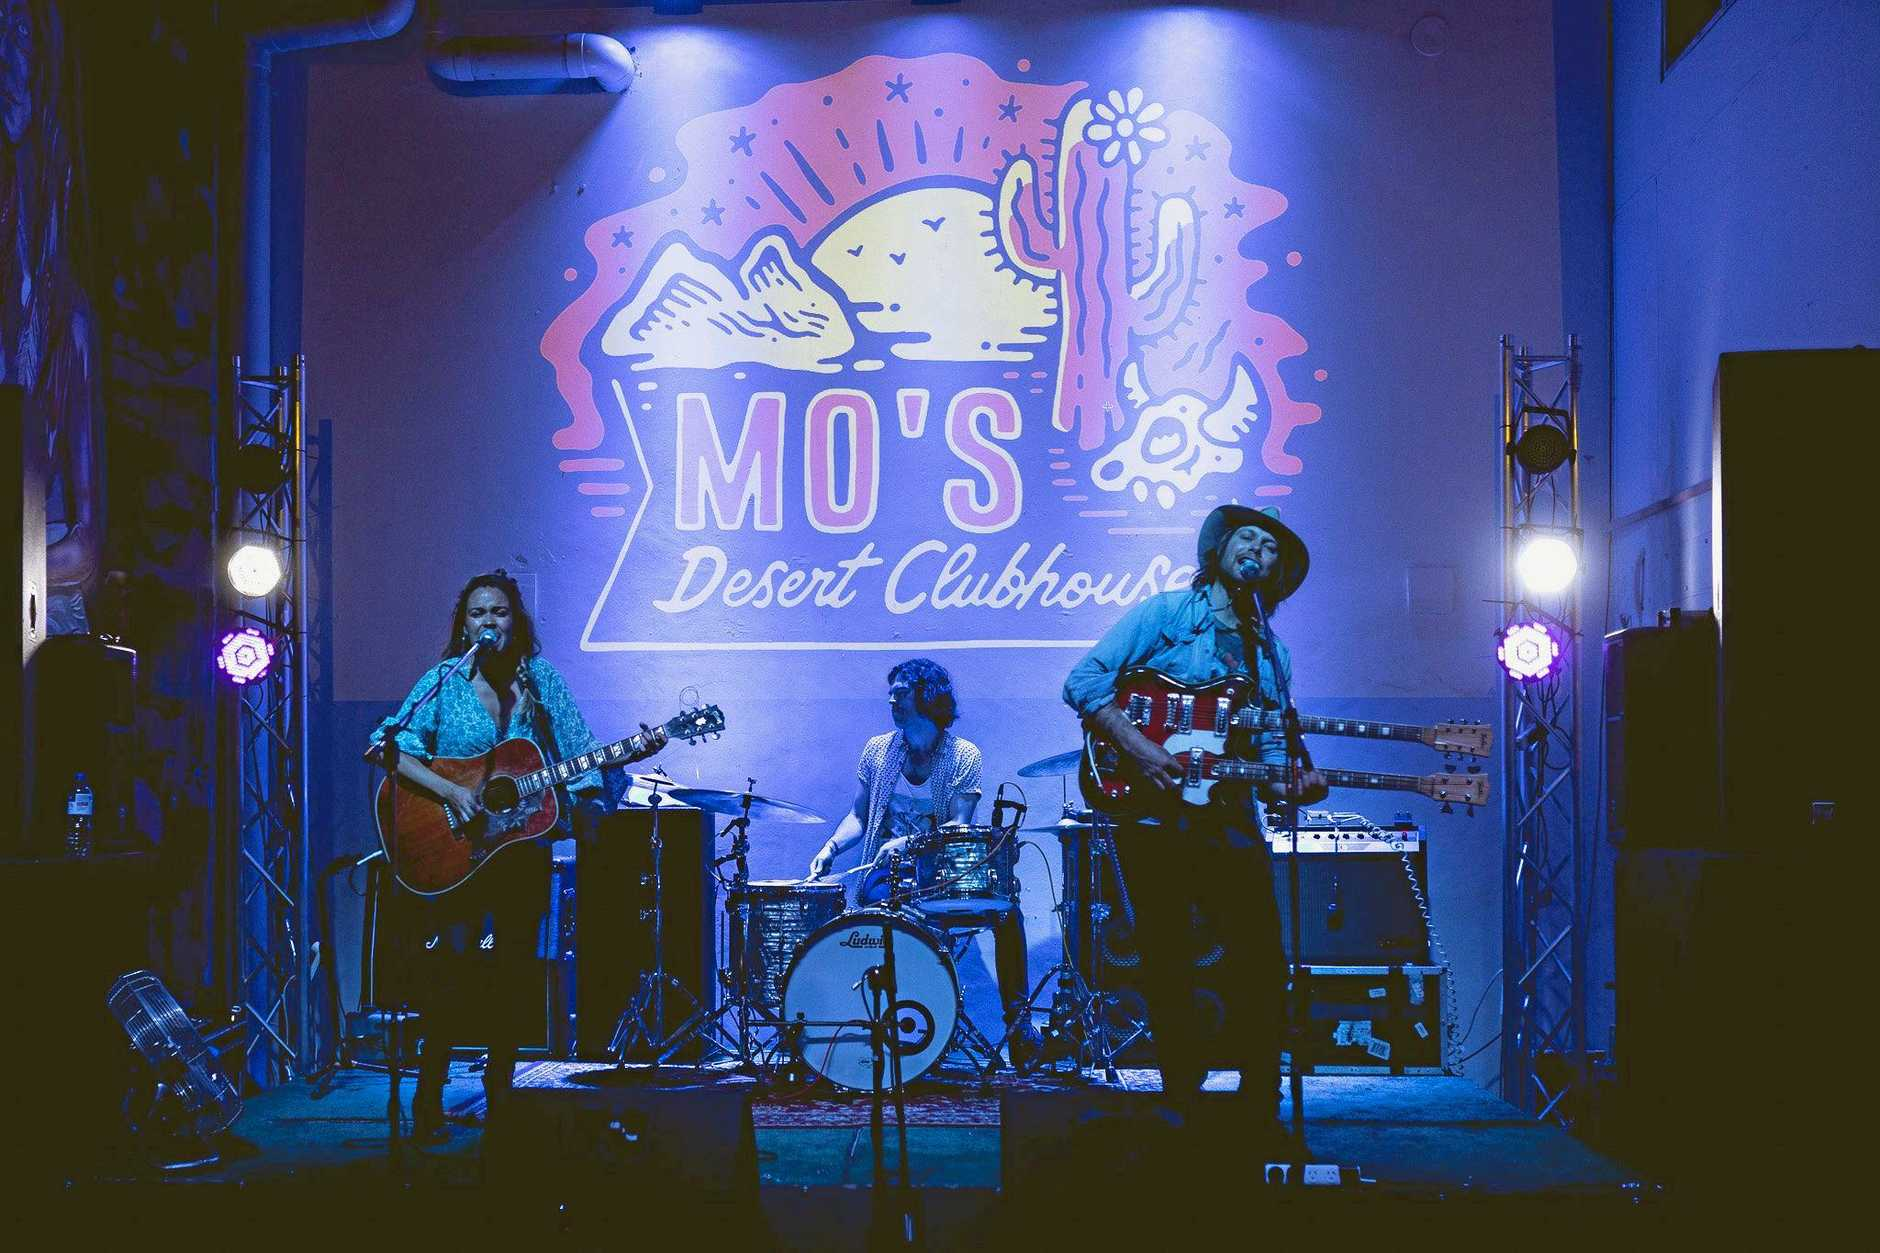 Mo's Desert Clubhouse at Burleigh Heads on the Gold Coast is a community hub for musicians, artists, creatives and industry-related crew, designed as a safe haven where creatives can dream, create, collaborate, inspire and motivate.